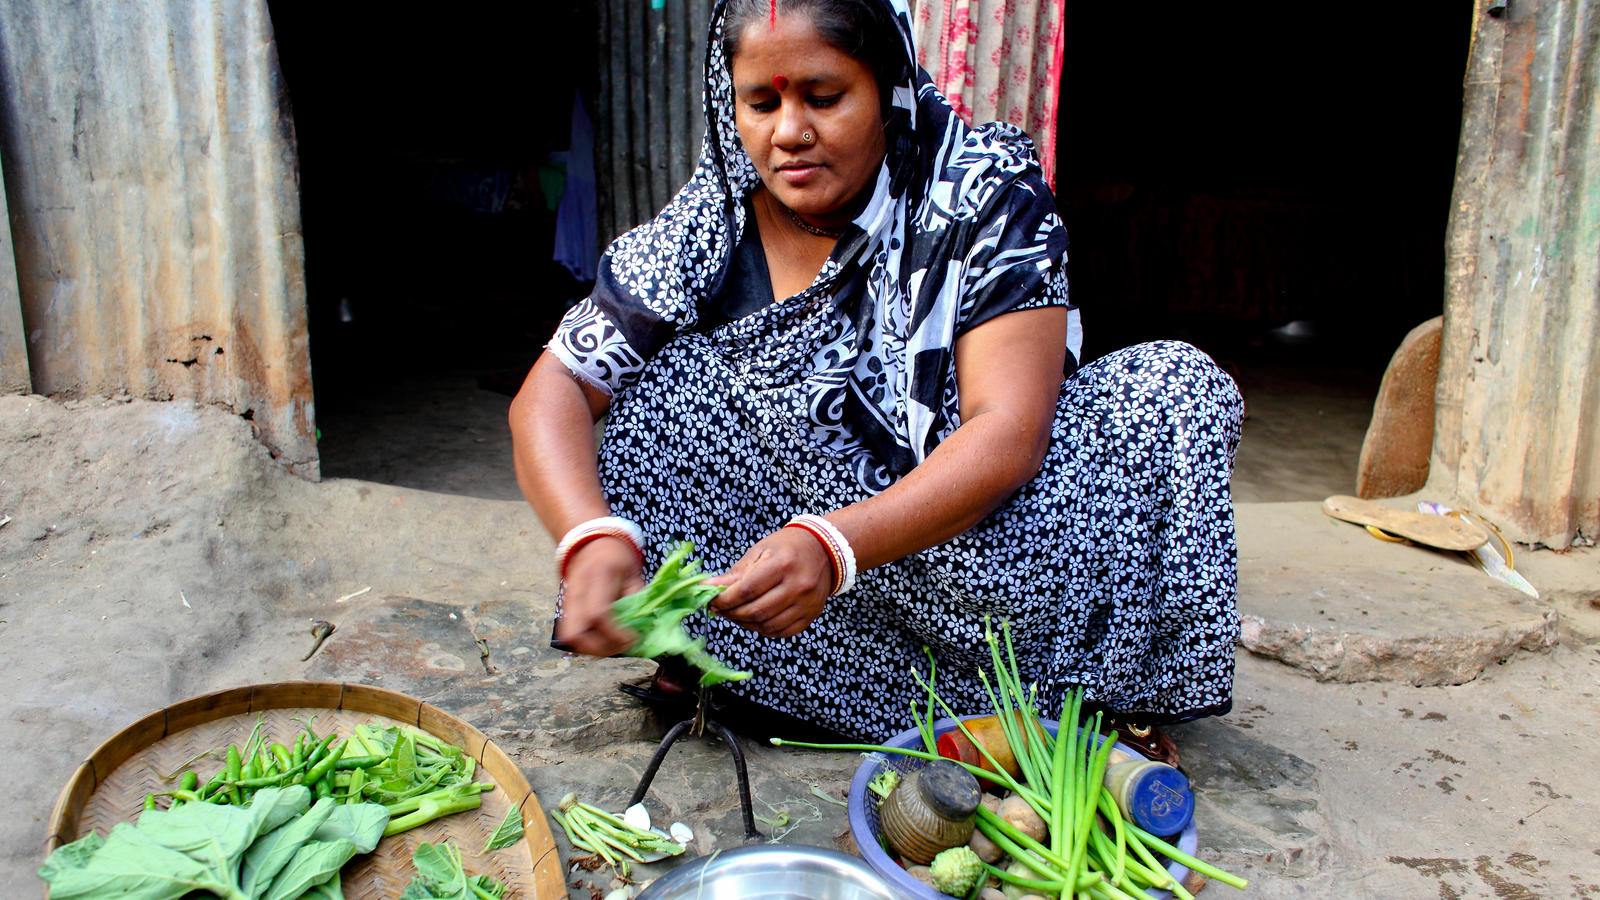 Bashona Sharkar, 40, Secretary of the Community Based Organisation, preparing food with clean water from the new water point in Kalshi Takar Baa slum, Dhaka, Bangladesh, 2011.